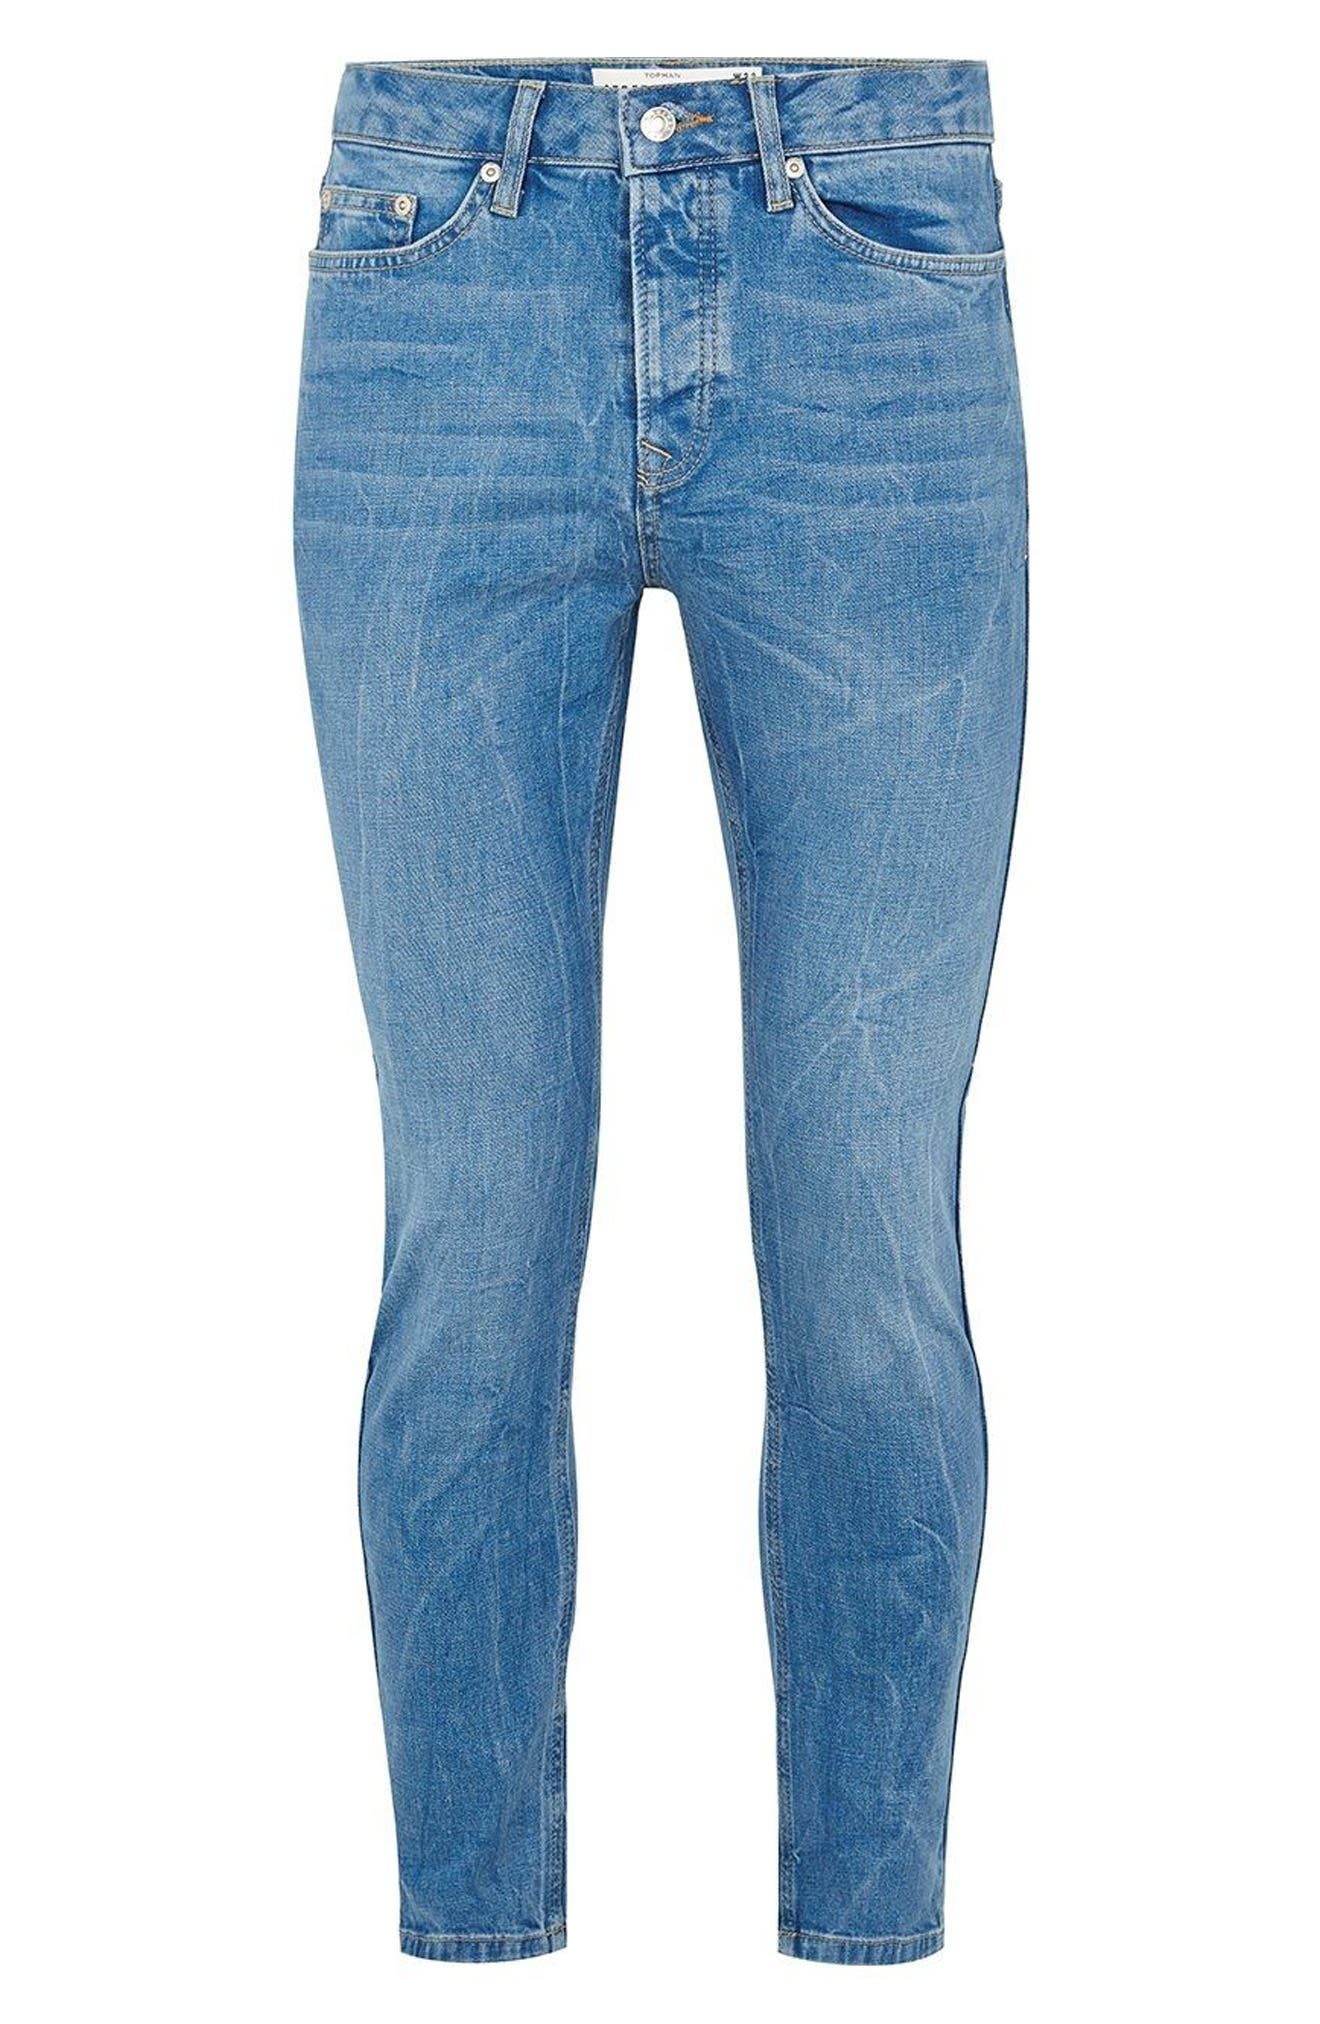 Stretch Slim Fit Jeans,                             Alternate thumbnail 4, color,                             400